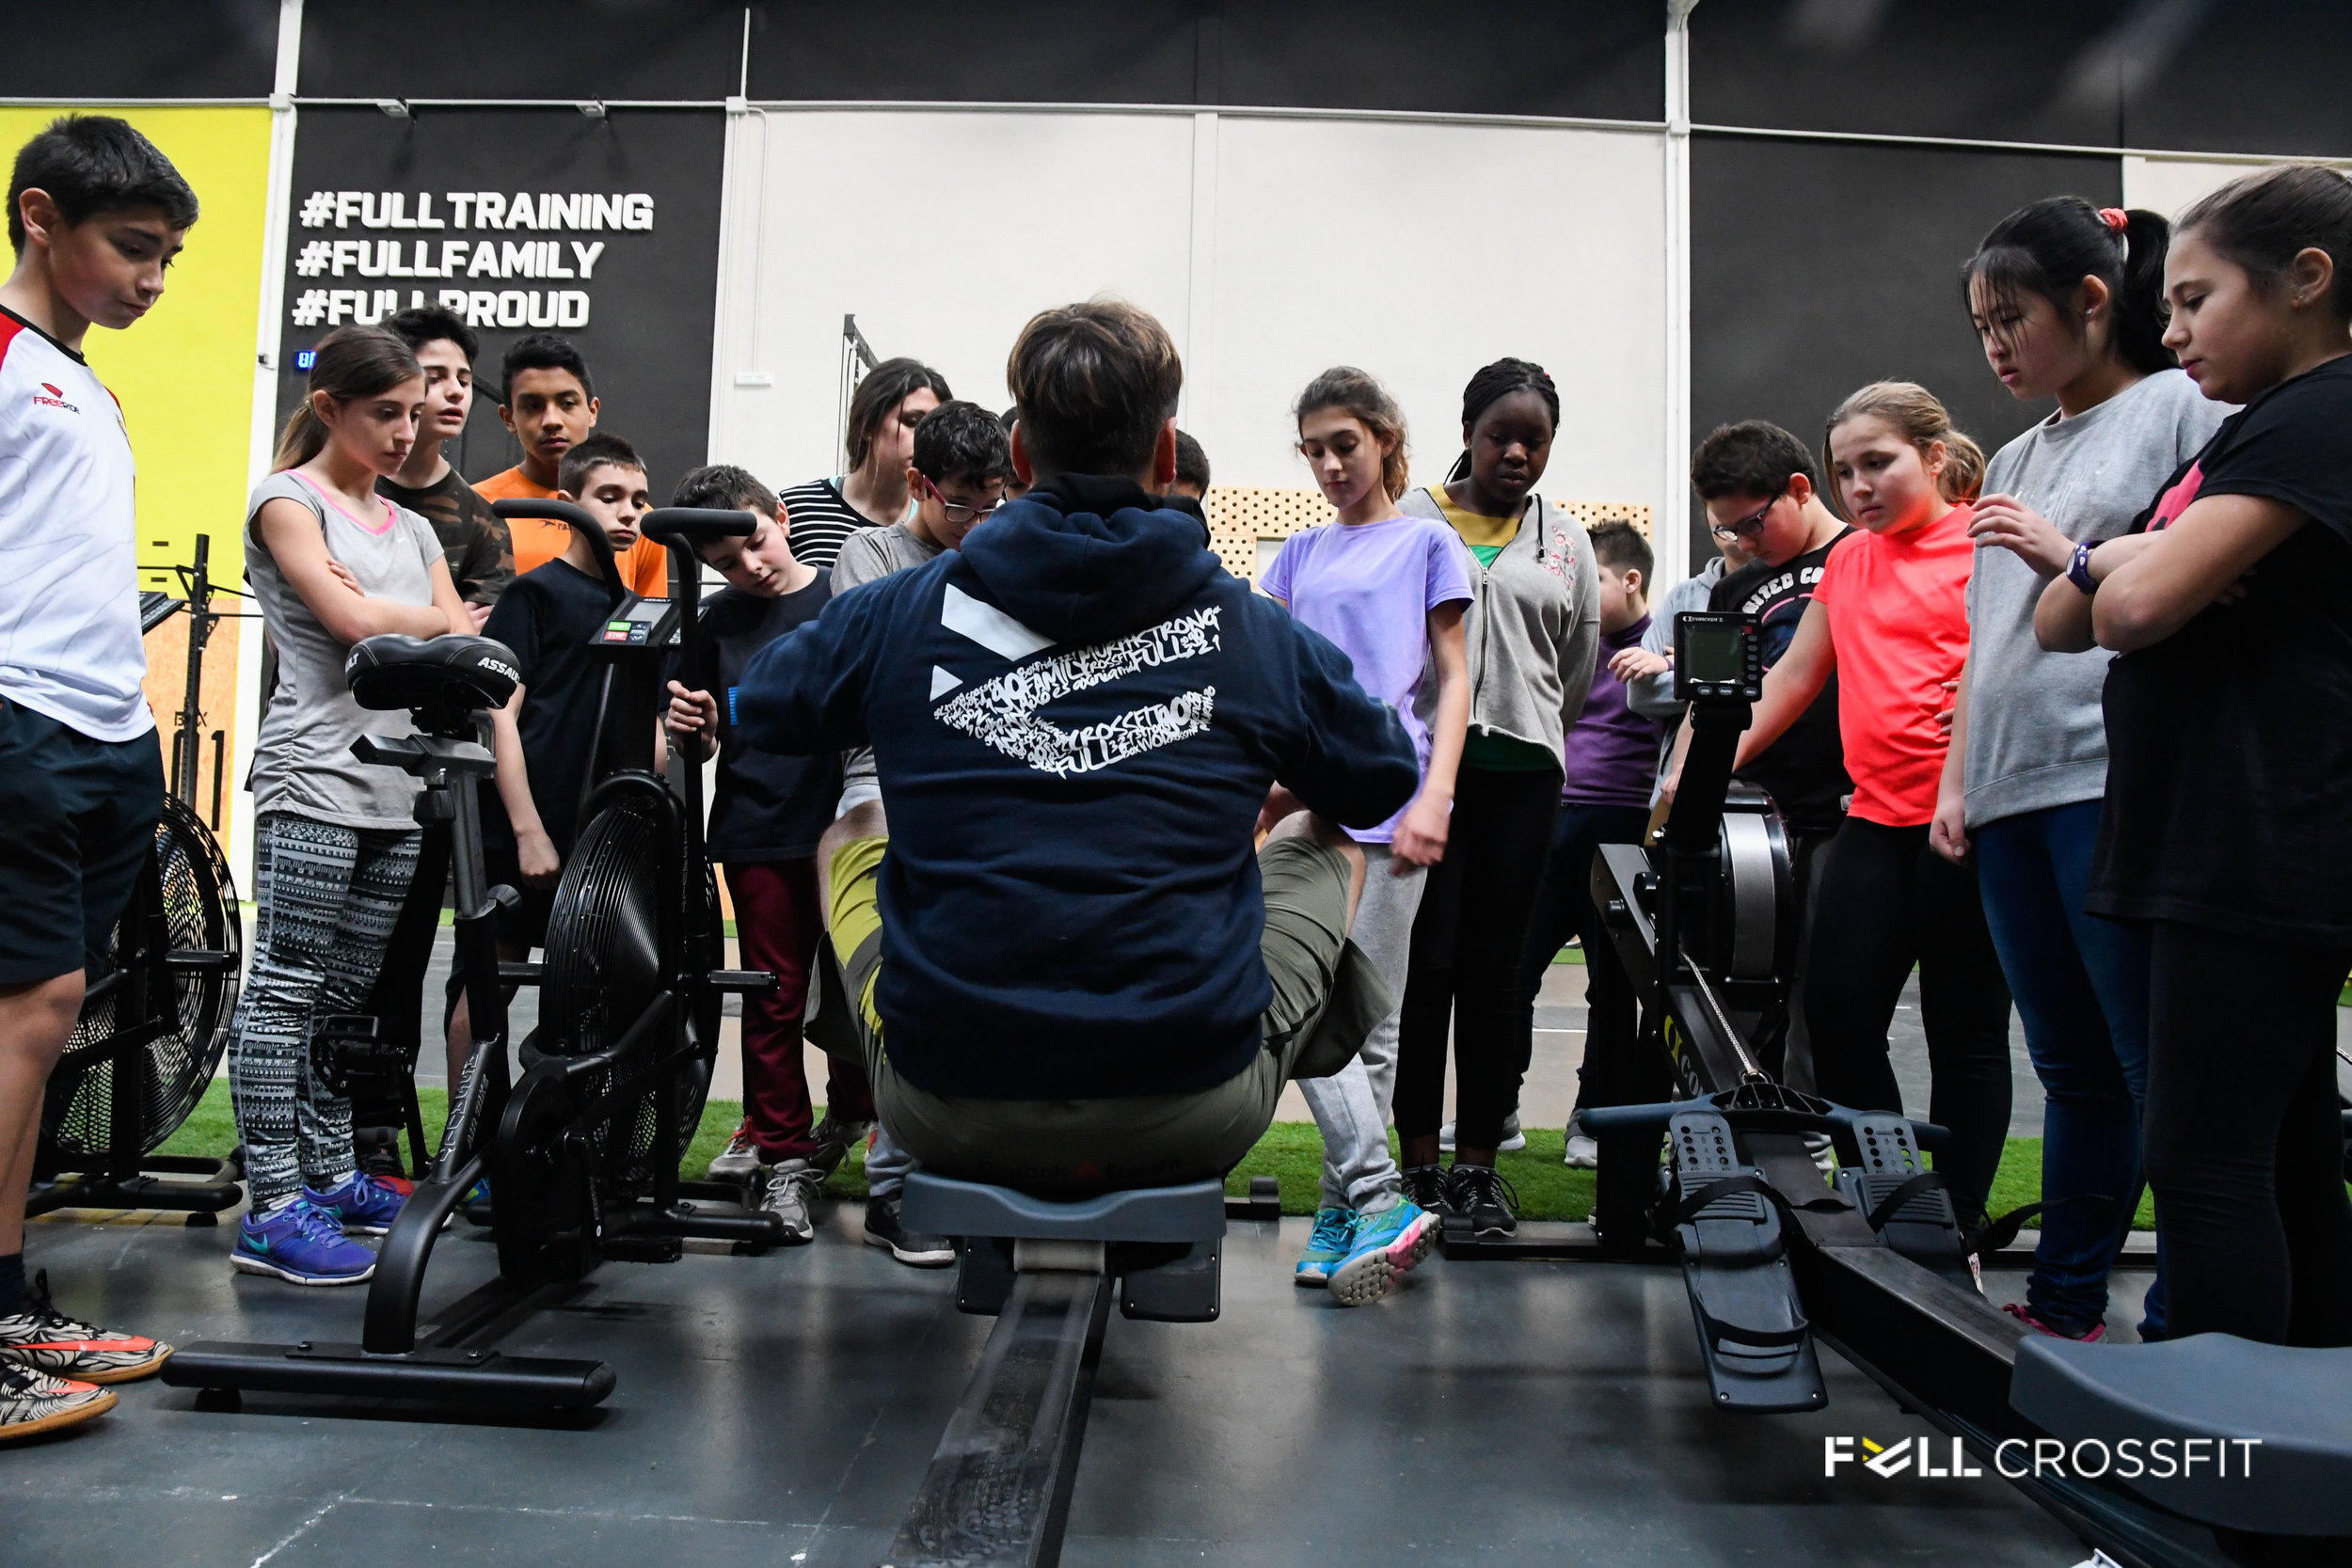 Full_Crossfit_kids-70.jpg